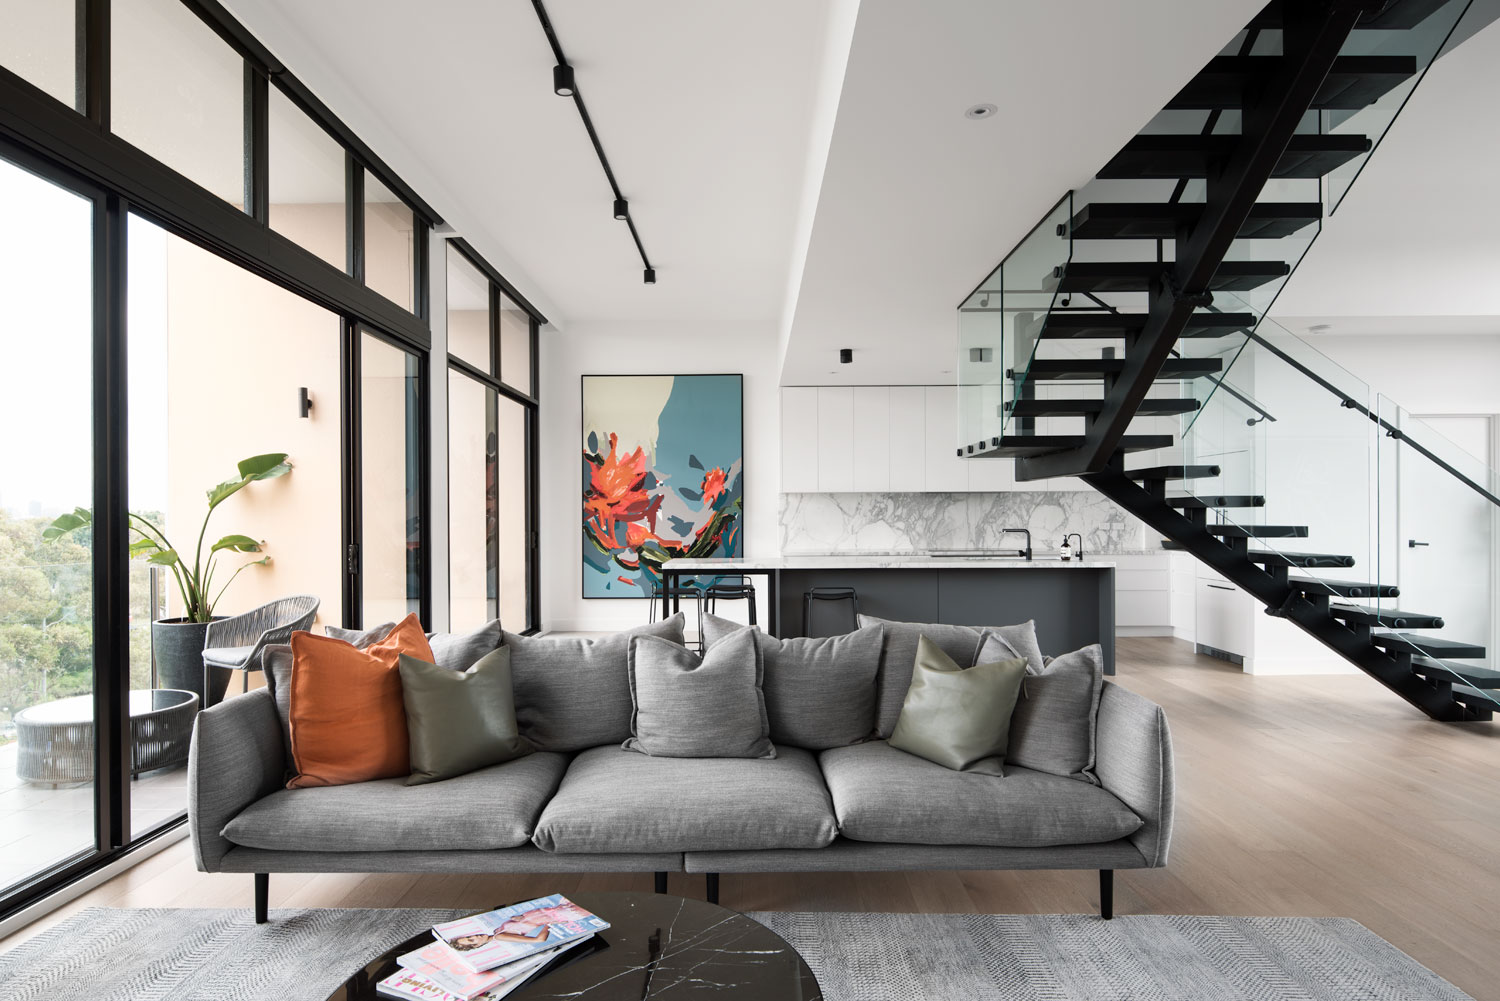 Living-room-1-for-web copy 60%